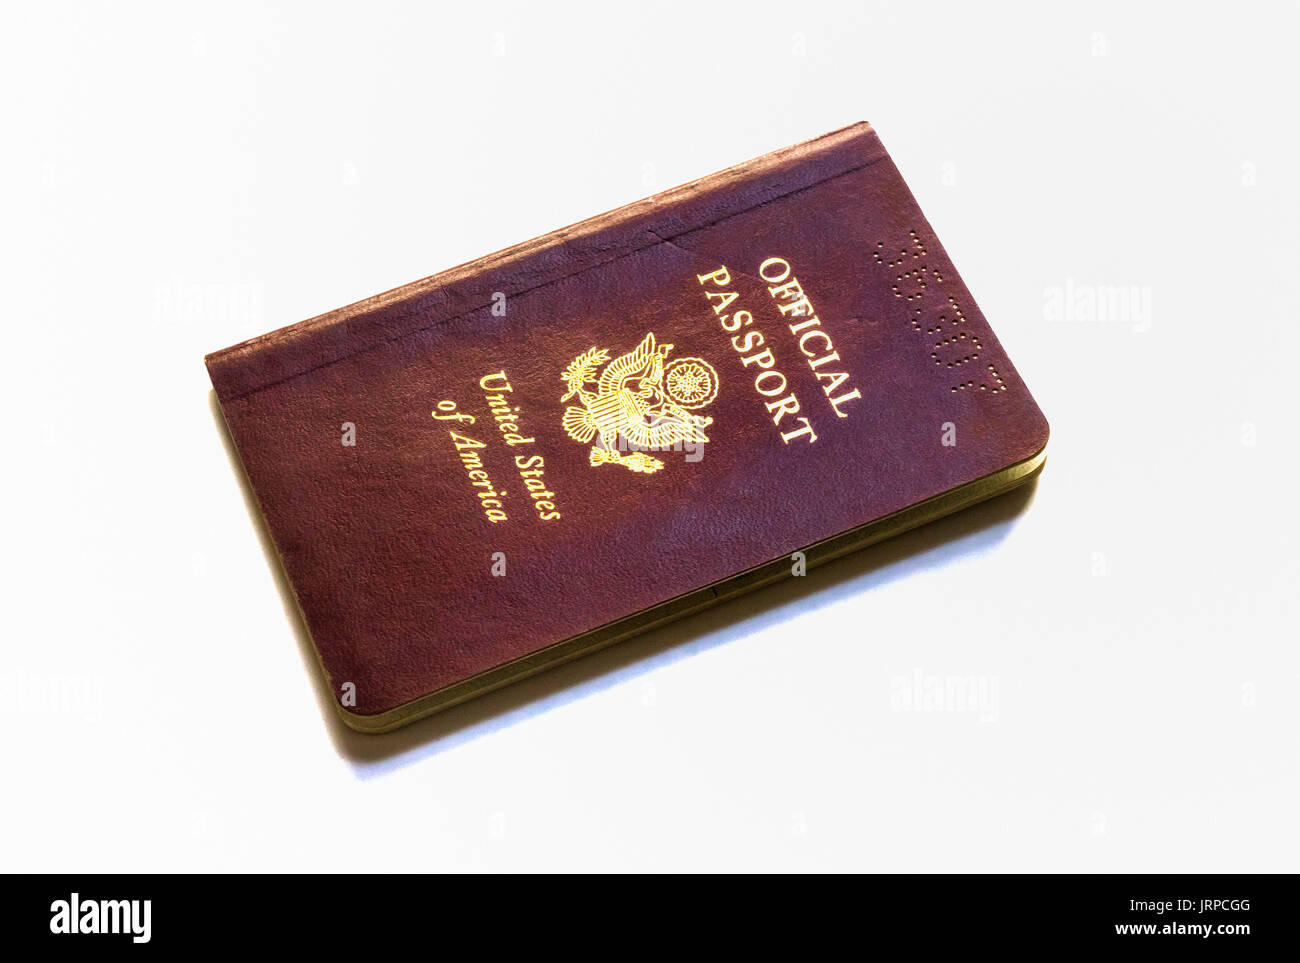 Reddish brown Official US passport shown against a white background - Stock Image